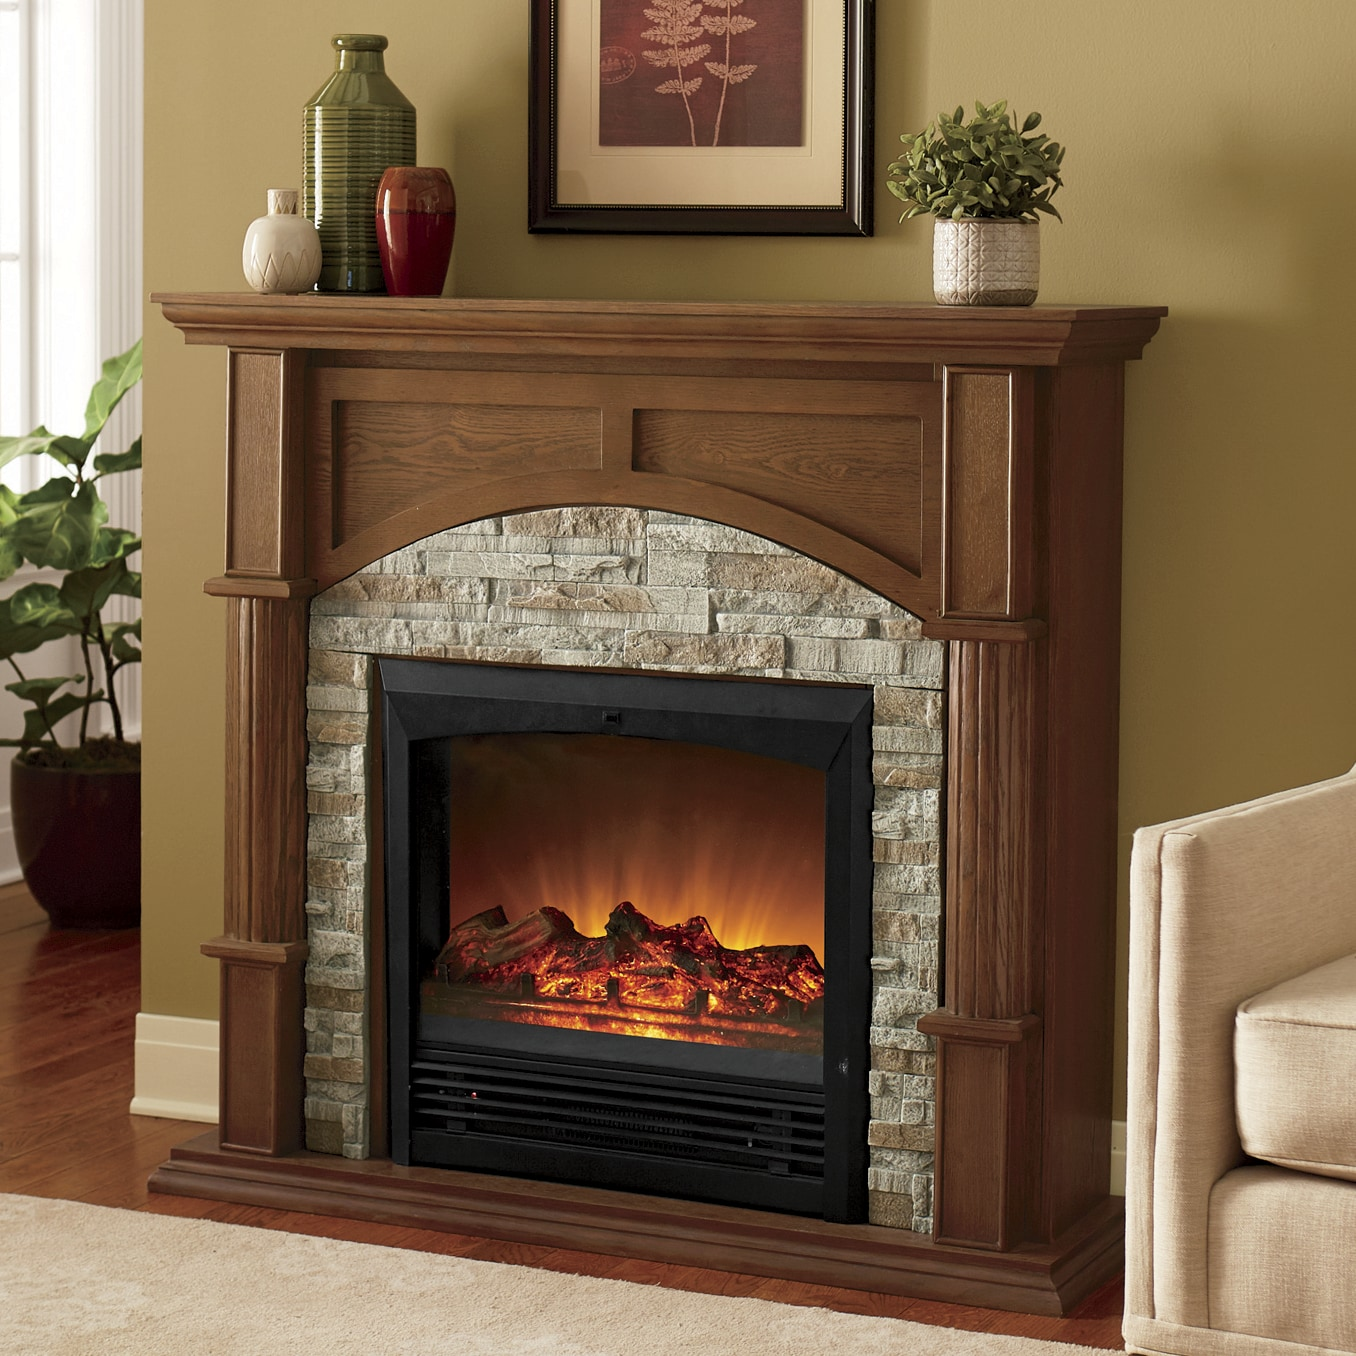 Faux Brick Fireplace Montgomery Ward